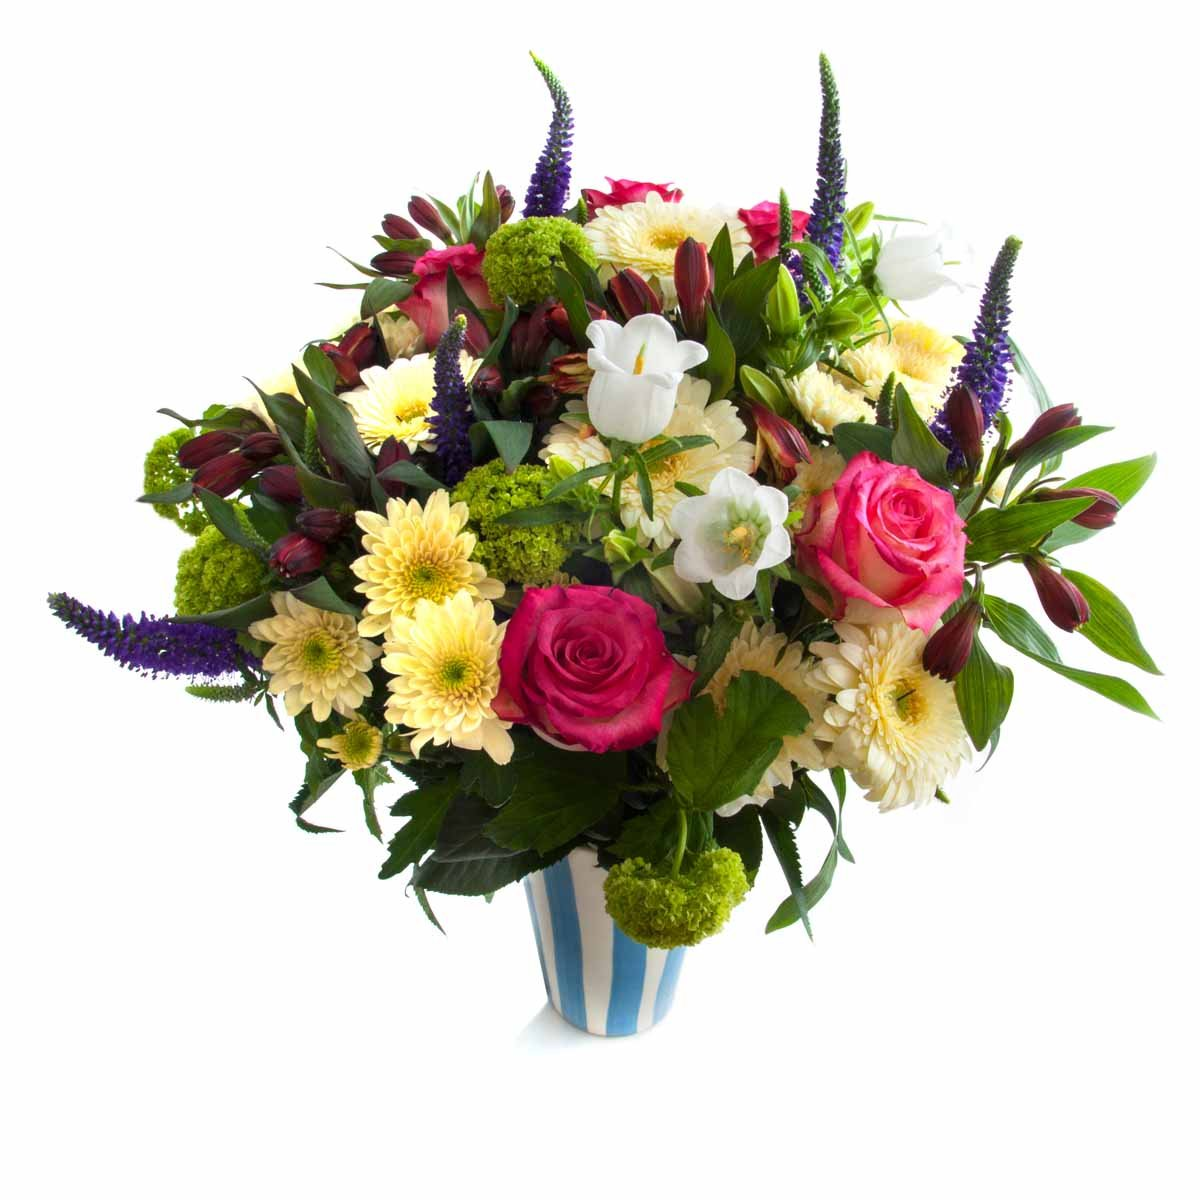 Rose Gifts | Tropical Shine Mixed Bouquet - Enduring Roses